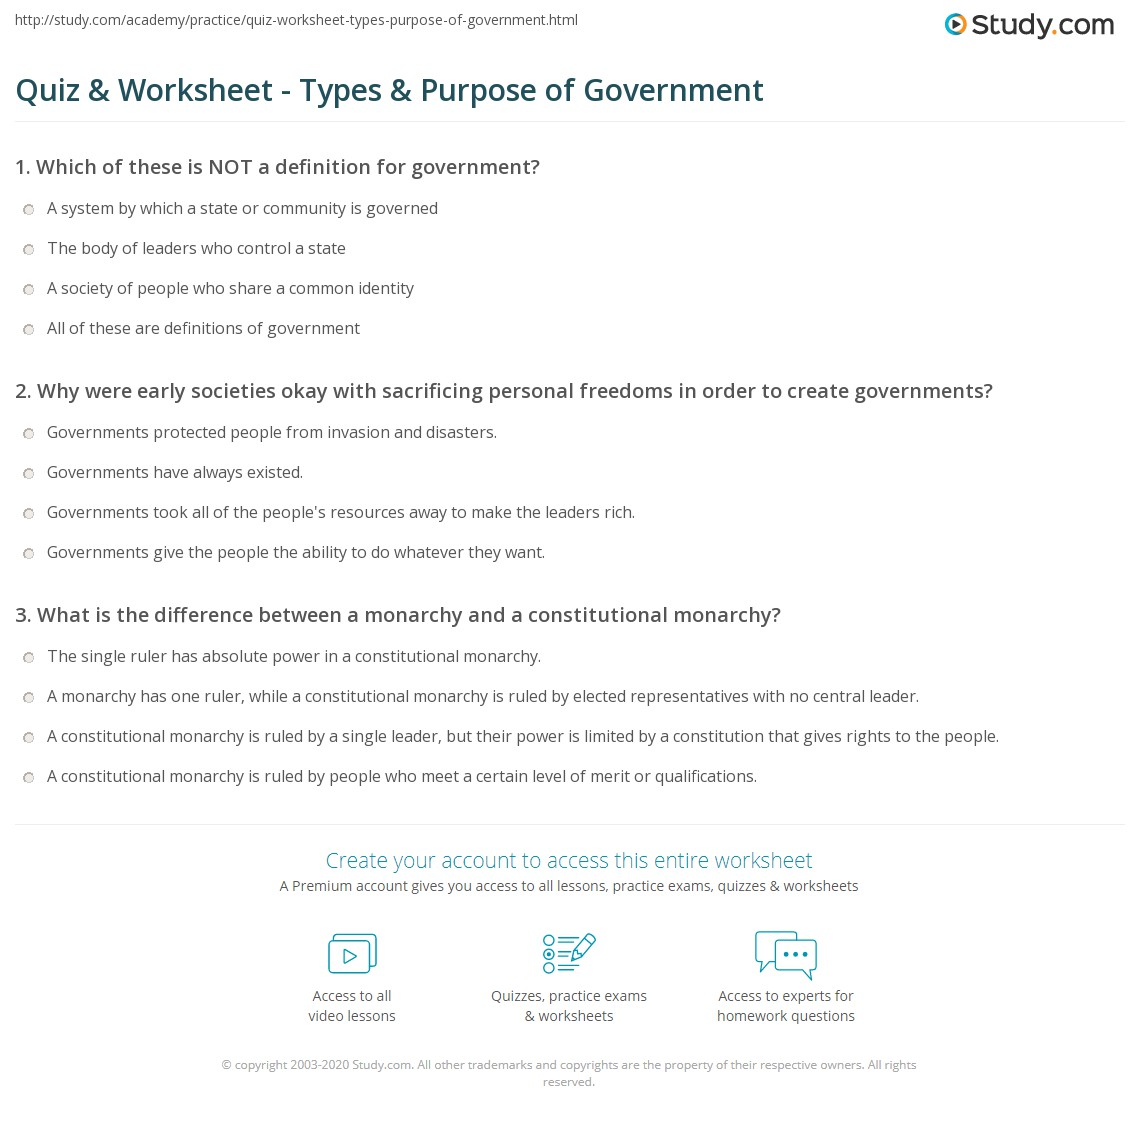 Workbooks types of government worksheets printable : Quiz & Worksheet - Types & Purpose of Government | Study.com